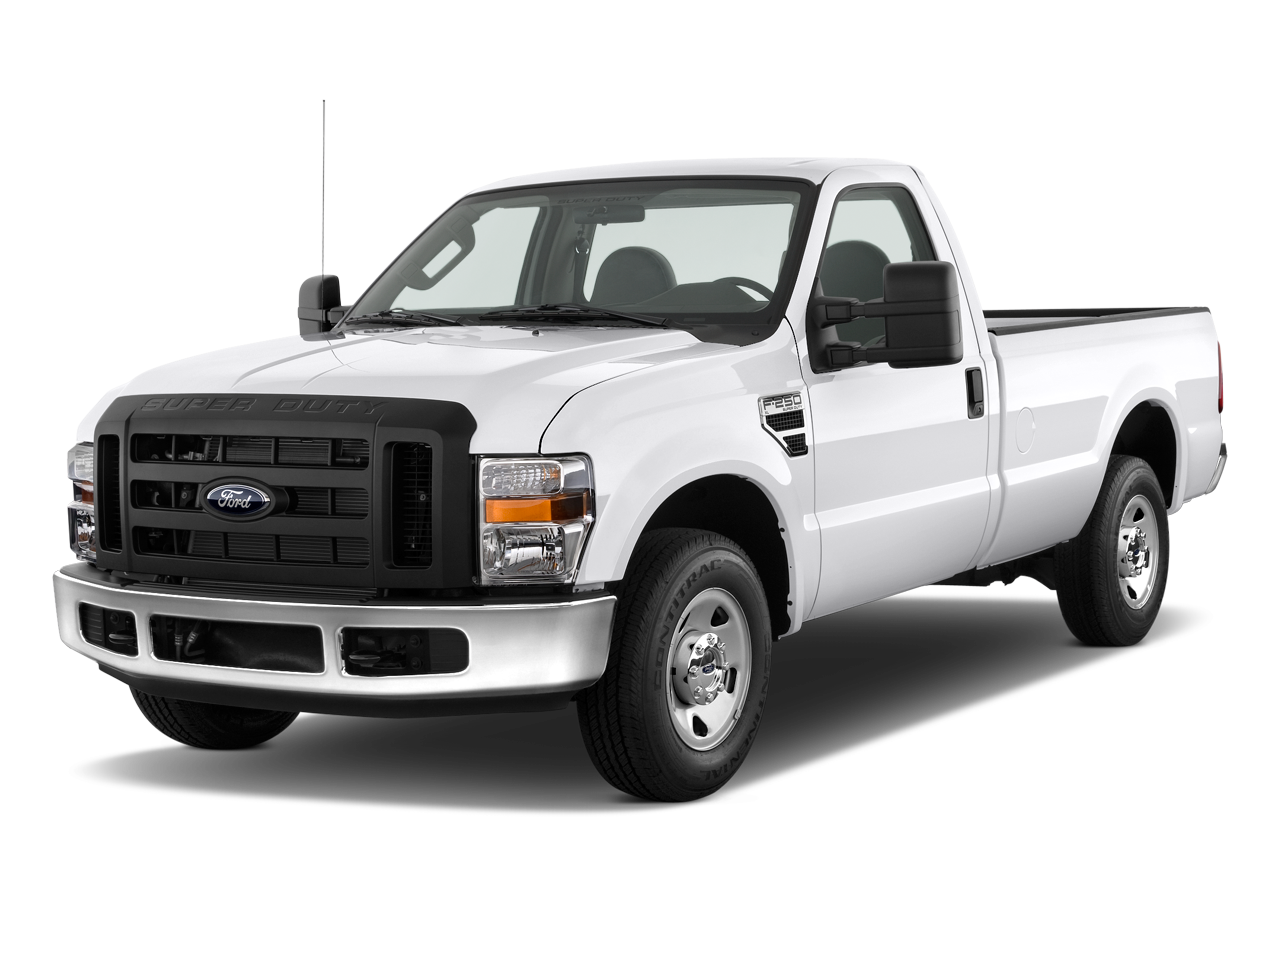 2009 ford f 250 cabela 39 s edition ford fullsize pickup truck review automobile magazine. Black Bedroom Furniture Sets. Home Design Ideas